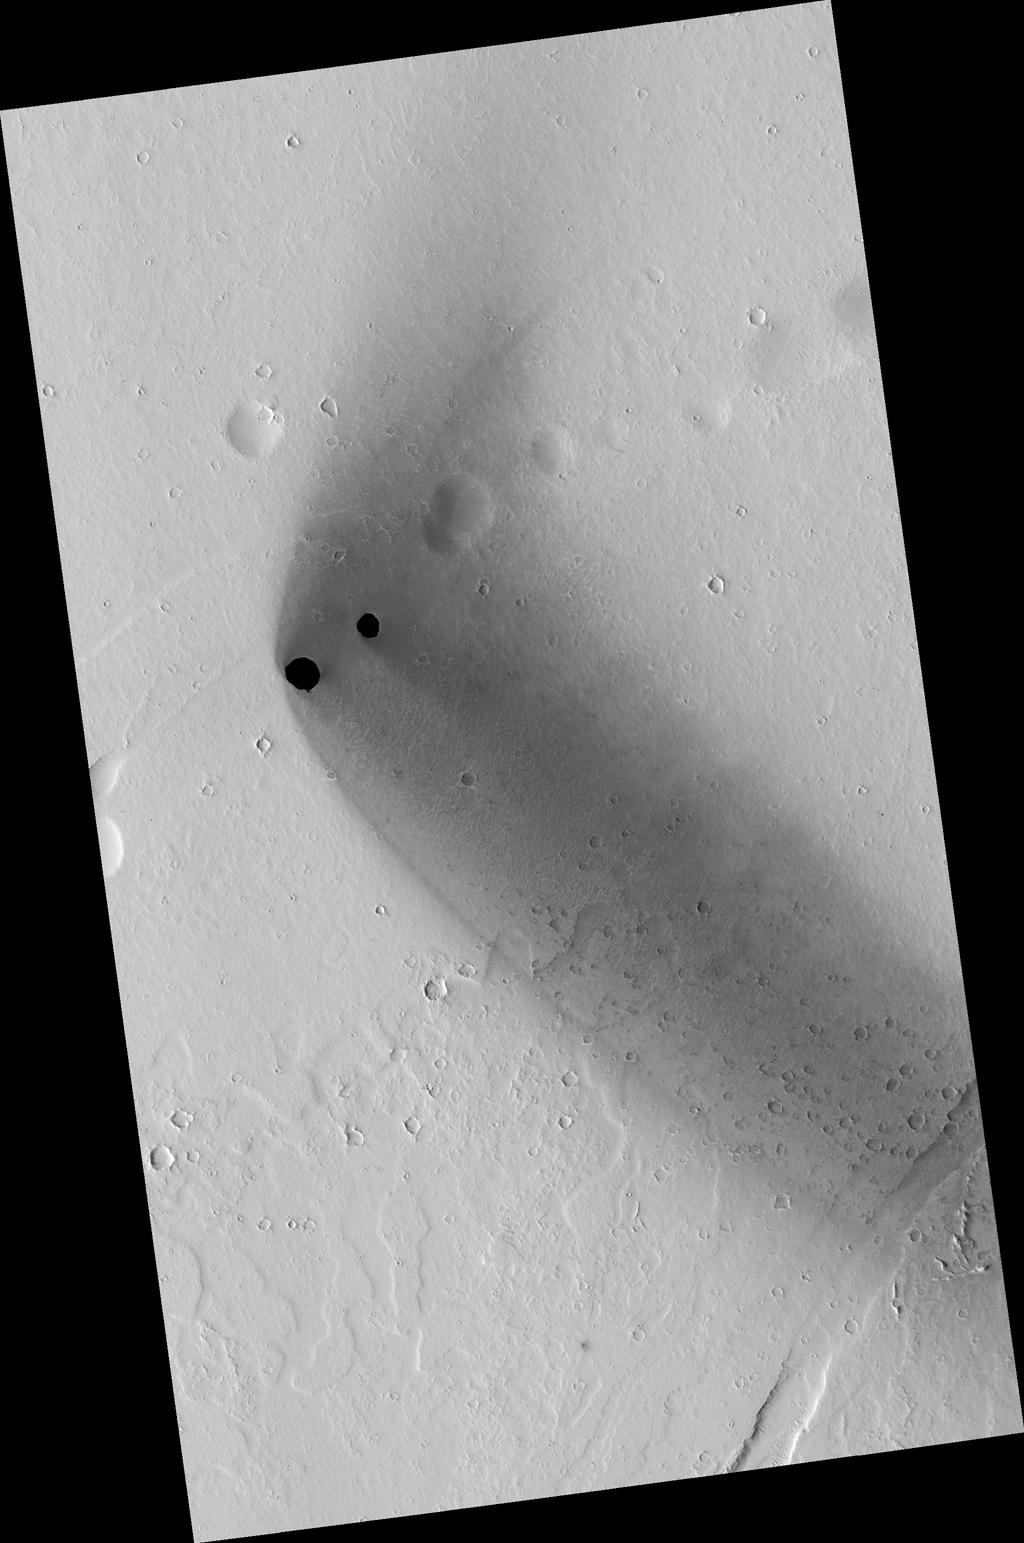 Two dark, rimless pits are located to the northwest of Ascraeus Mons in the Tharsis volcanic region of Mars in this image from NASA's Mars Reconnaissance Orbiter. They are situated in the midst of a wispy, dark, boomerang-shaped deposit.